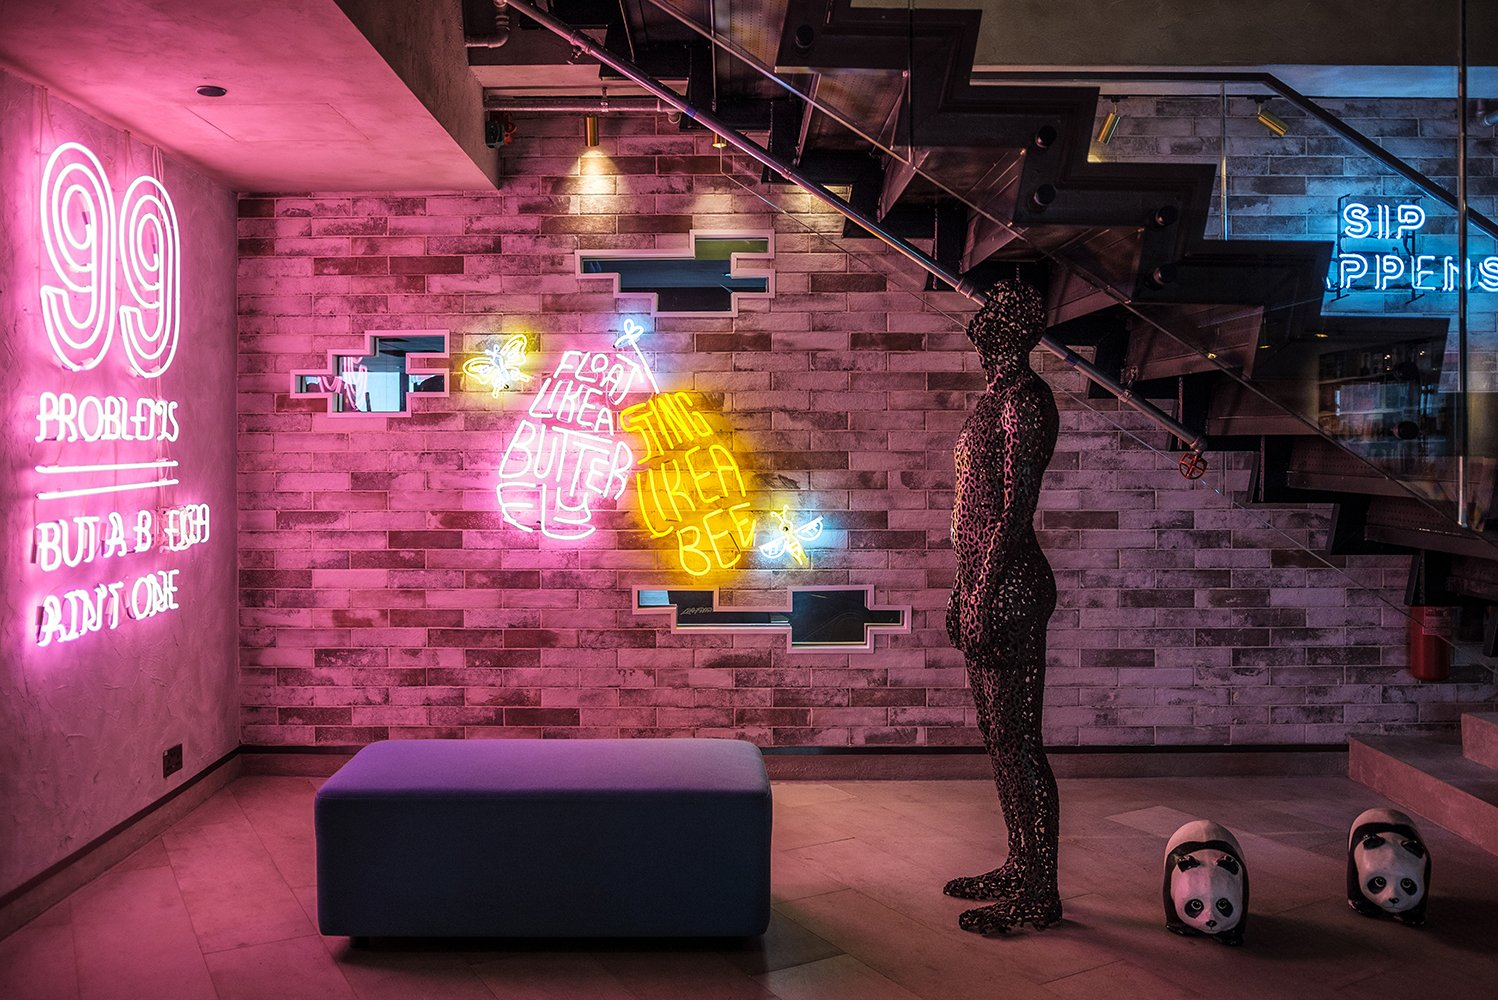 When entering the lobby, guests will be met with neon signs and colorful artwork.